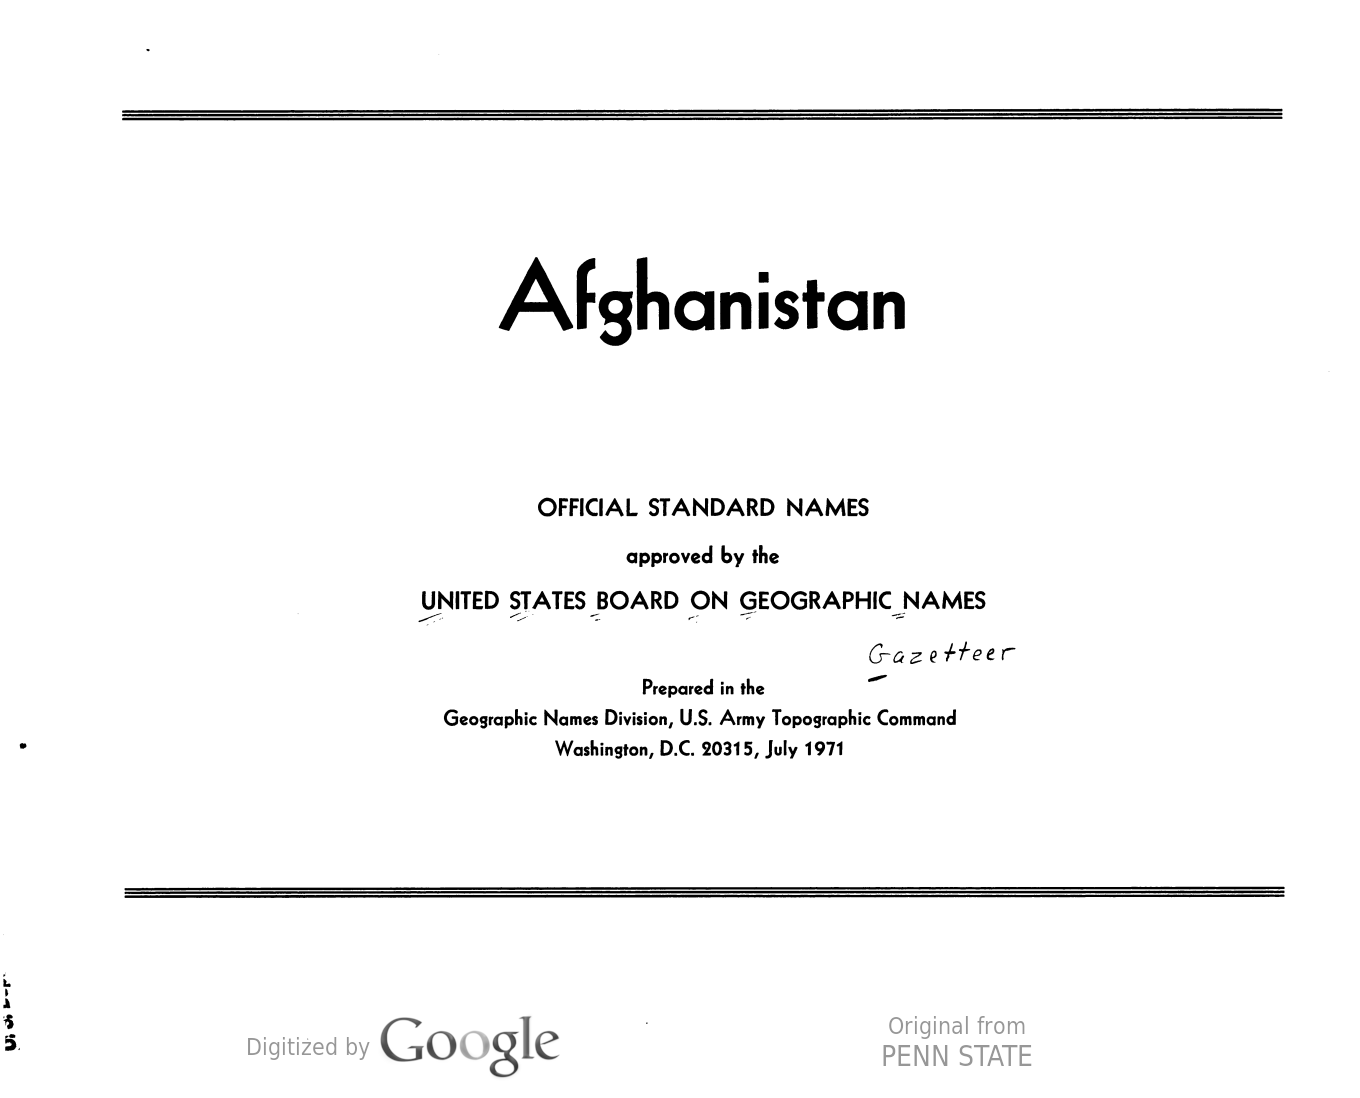 Image of a title page for a U.S. government gazetteer of Afghanistan.